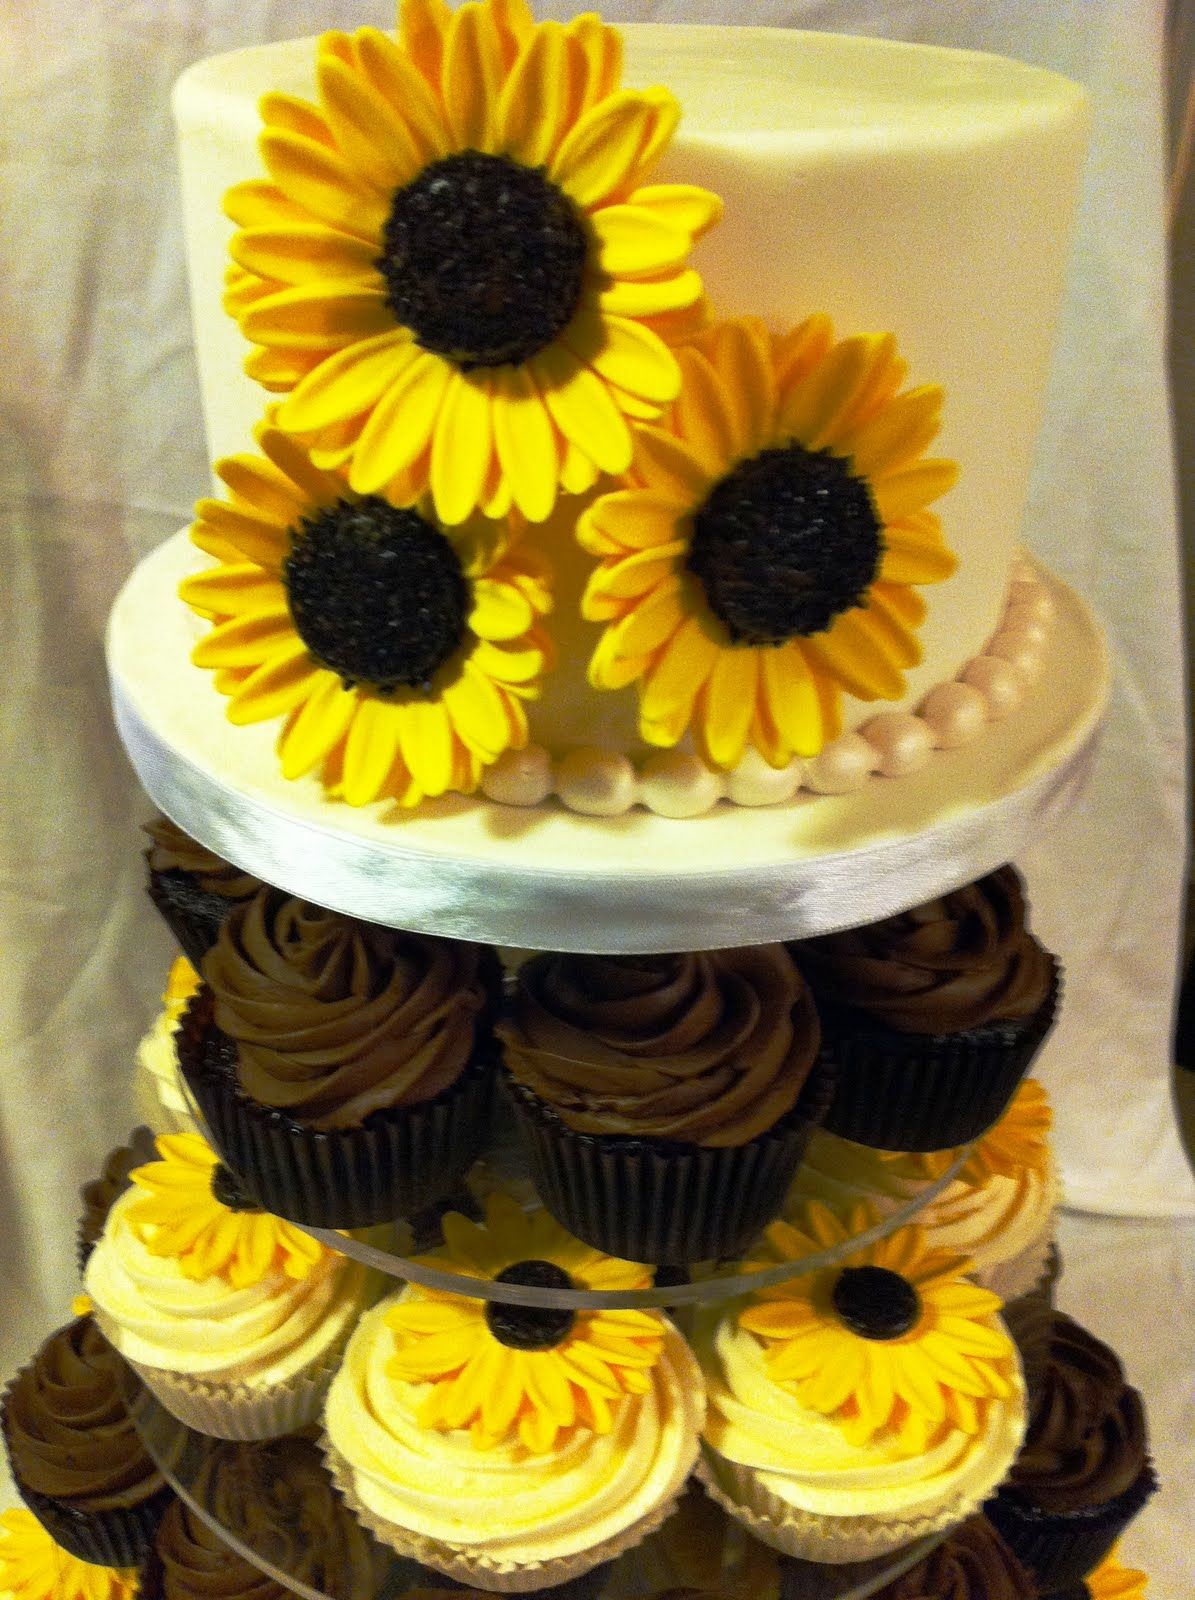 Wedding Cakes Made With Sunflower Cup Cakes The Brown Layer On